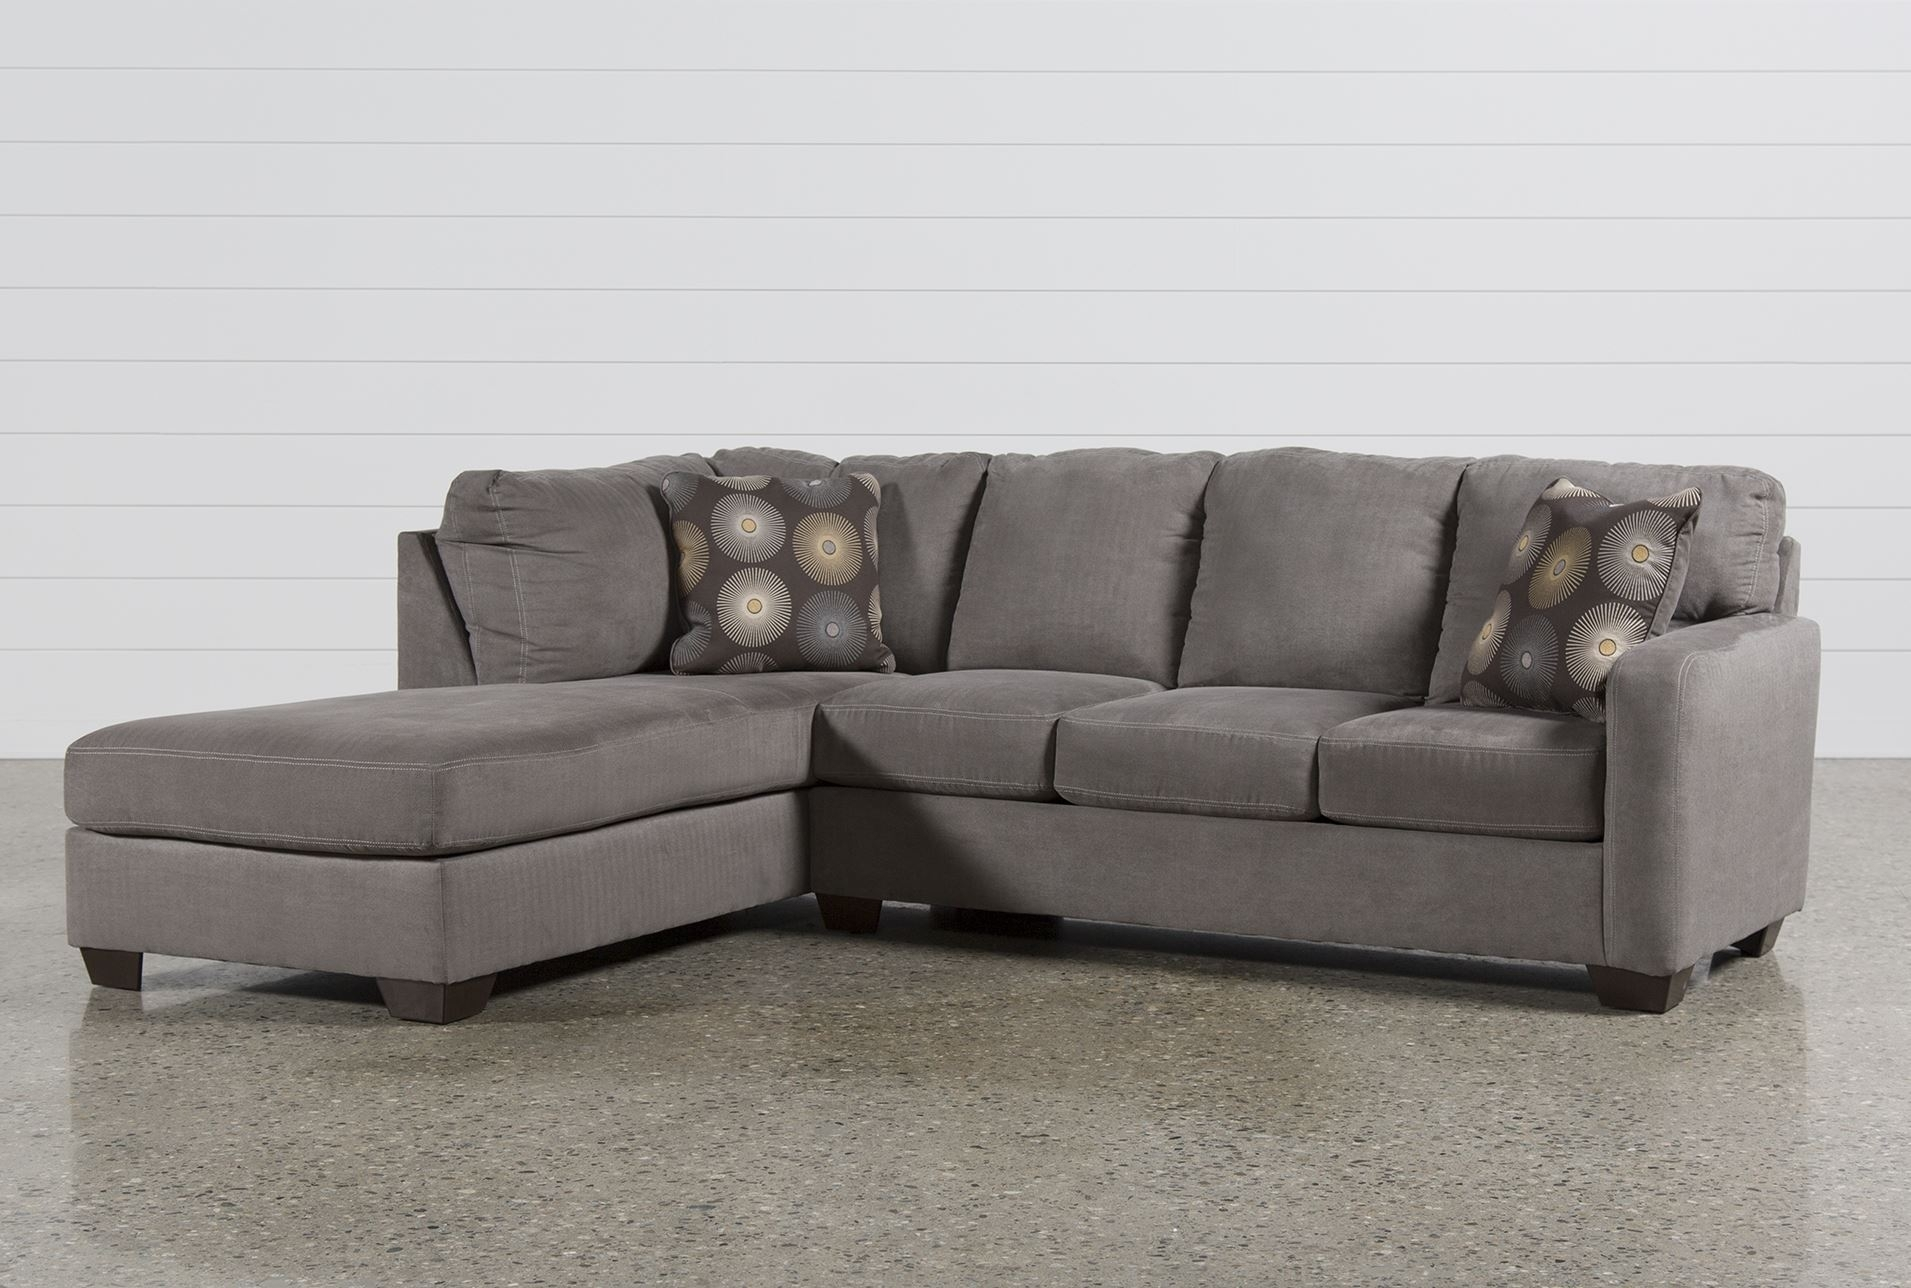 Laf Chaise Sectional Sofa | Baci Living Room Intended For Sierra Down 3 Piece Sectionals With Laf Chaise (View 5 of 25)